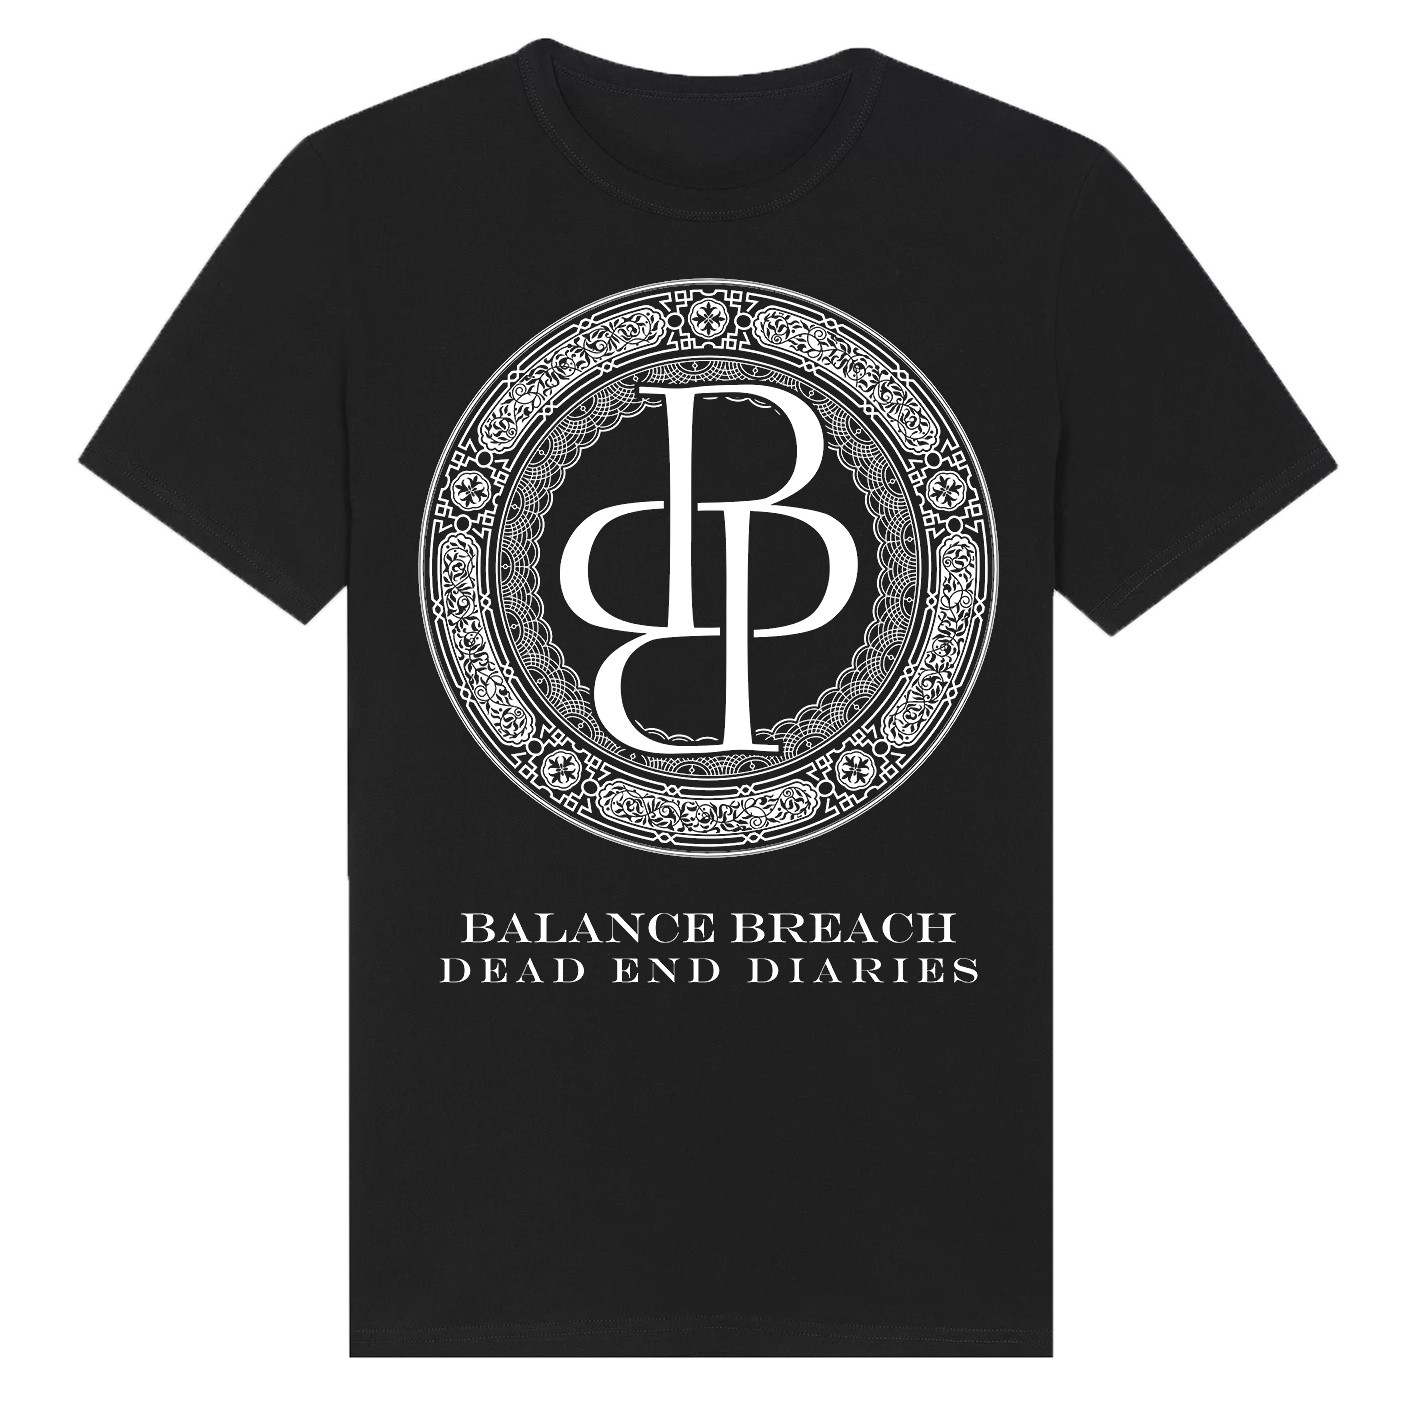 Balance Breach - Dead End Diaries - T-Shirt